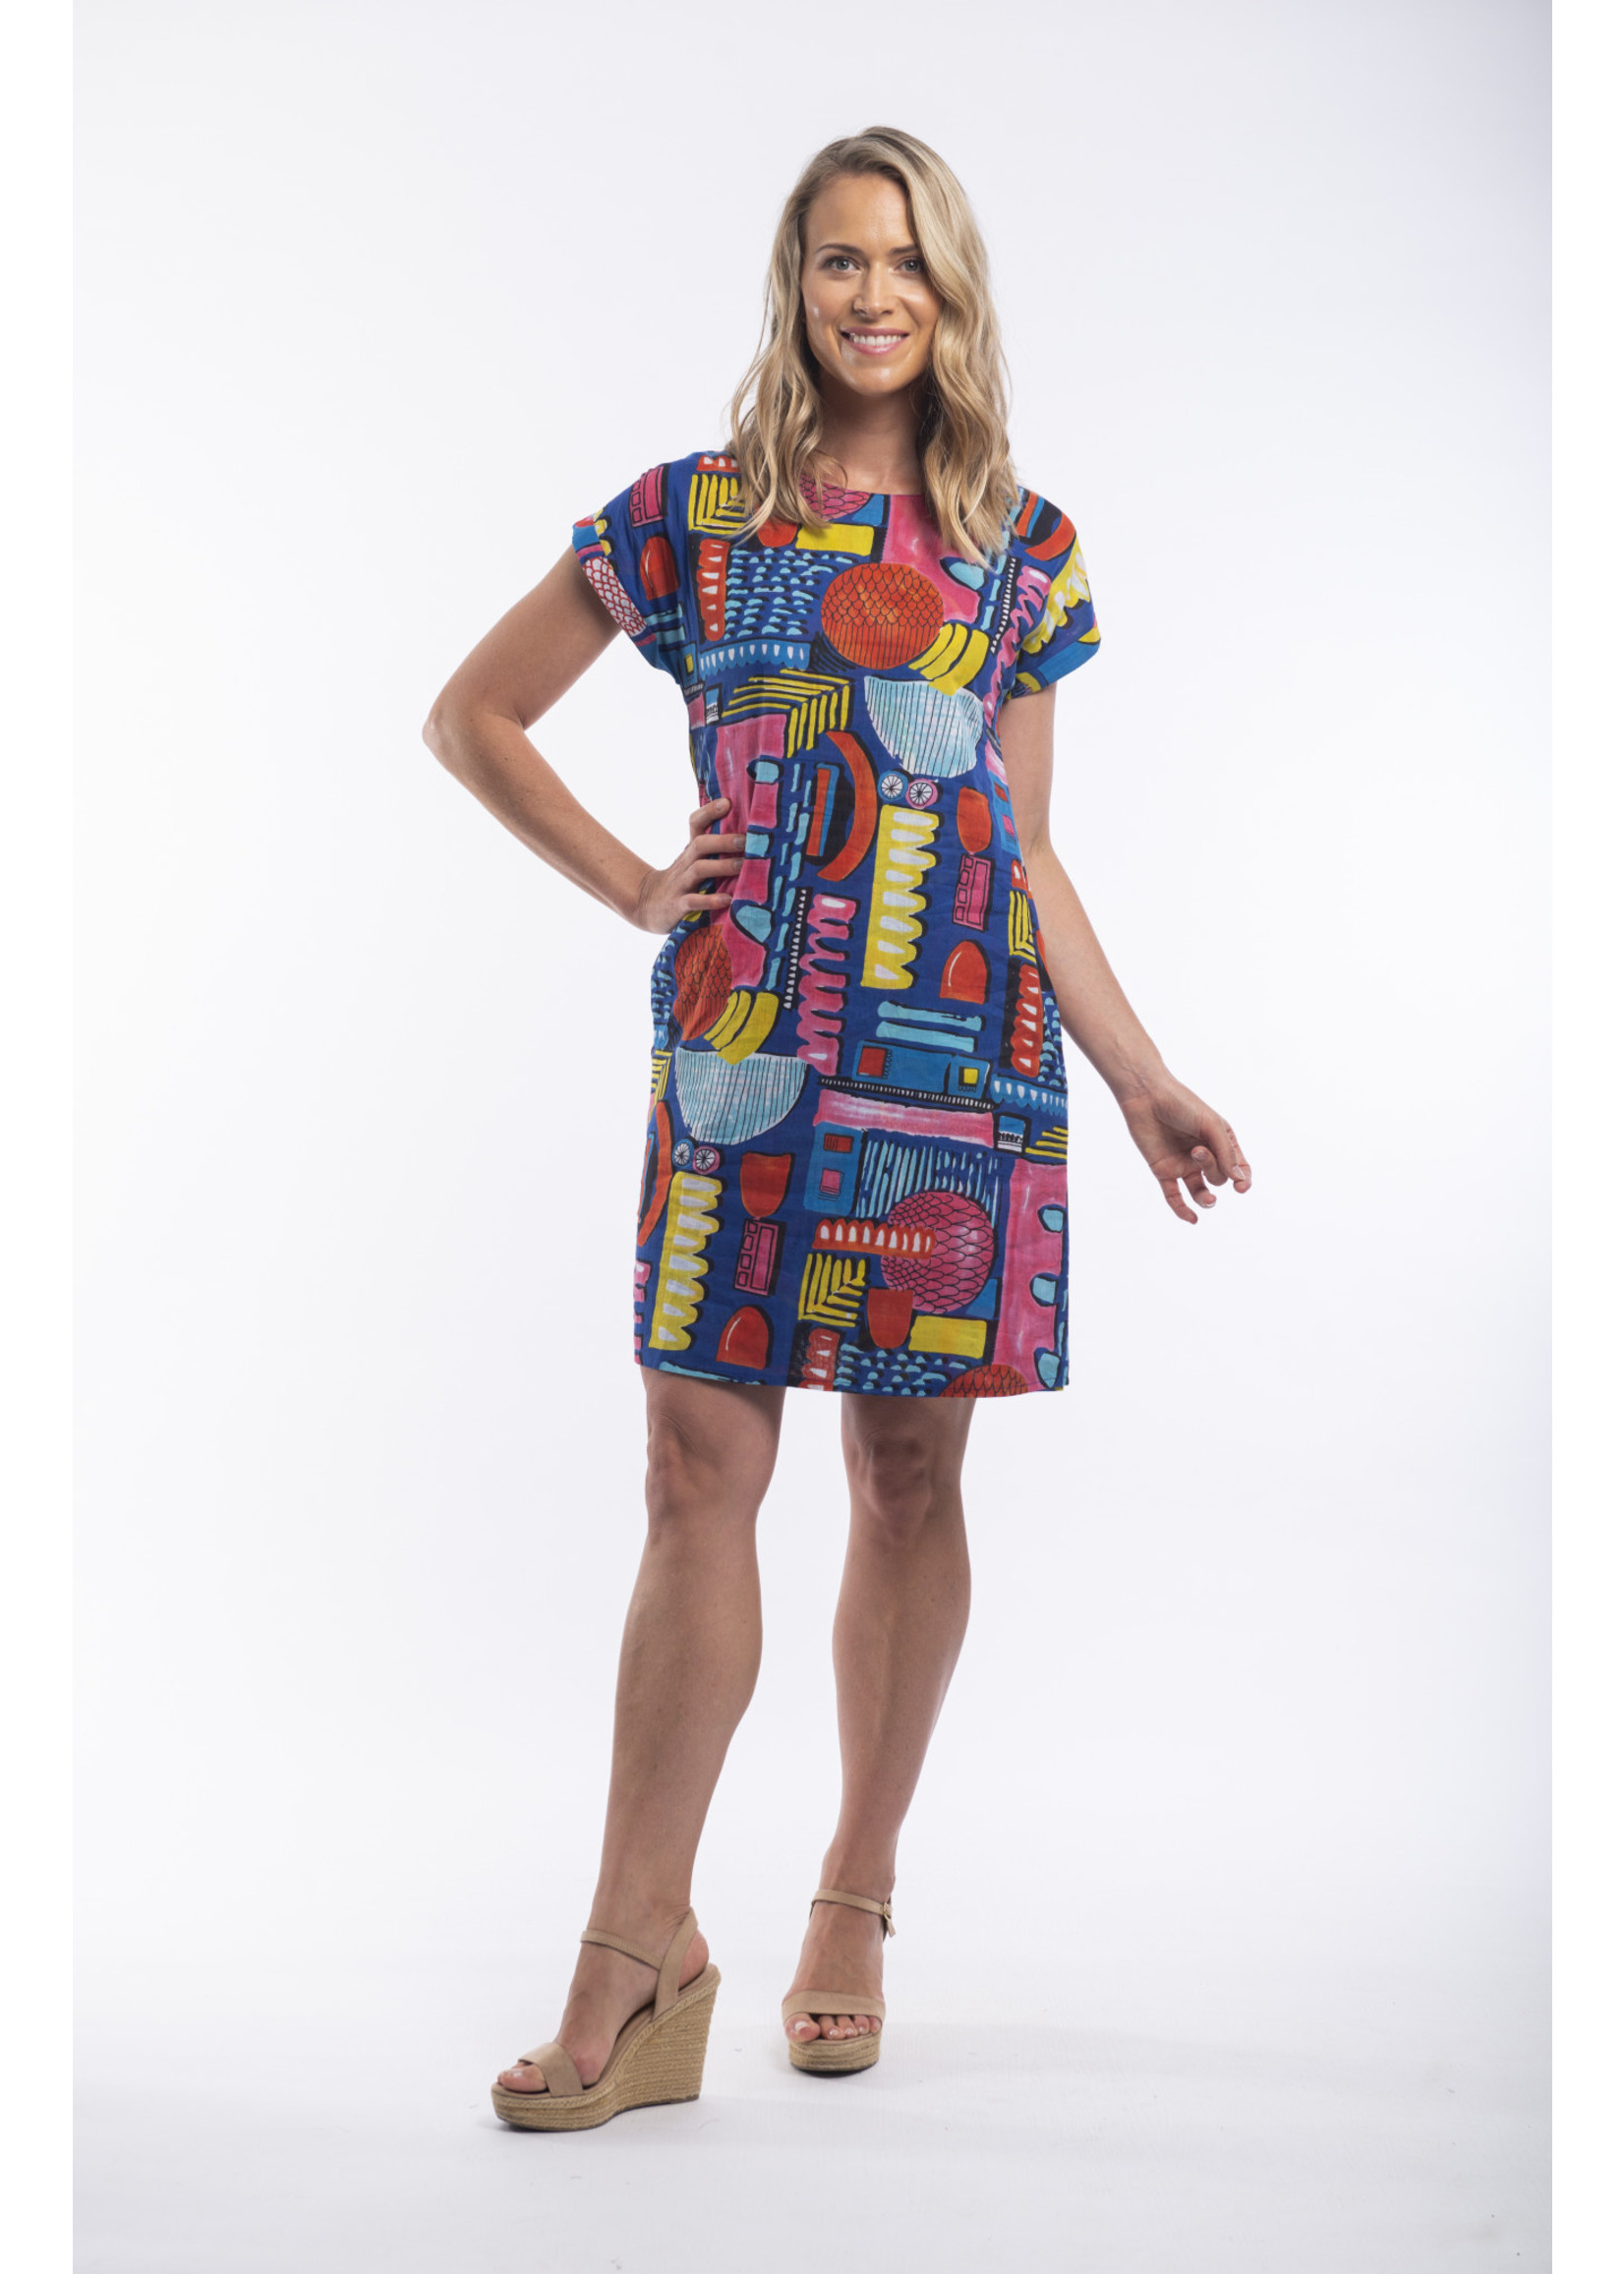 Orientique 100% Cotton Dress